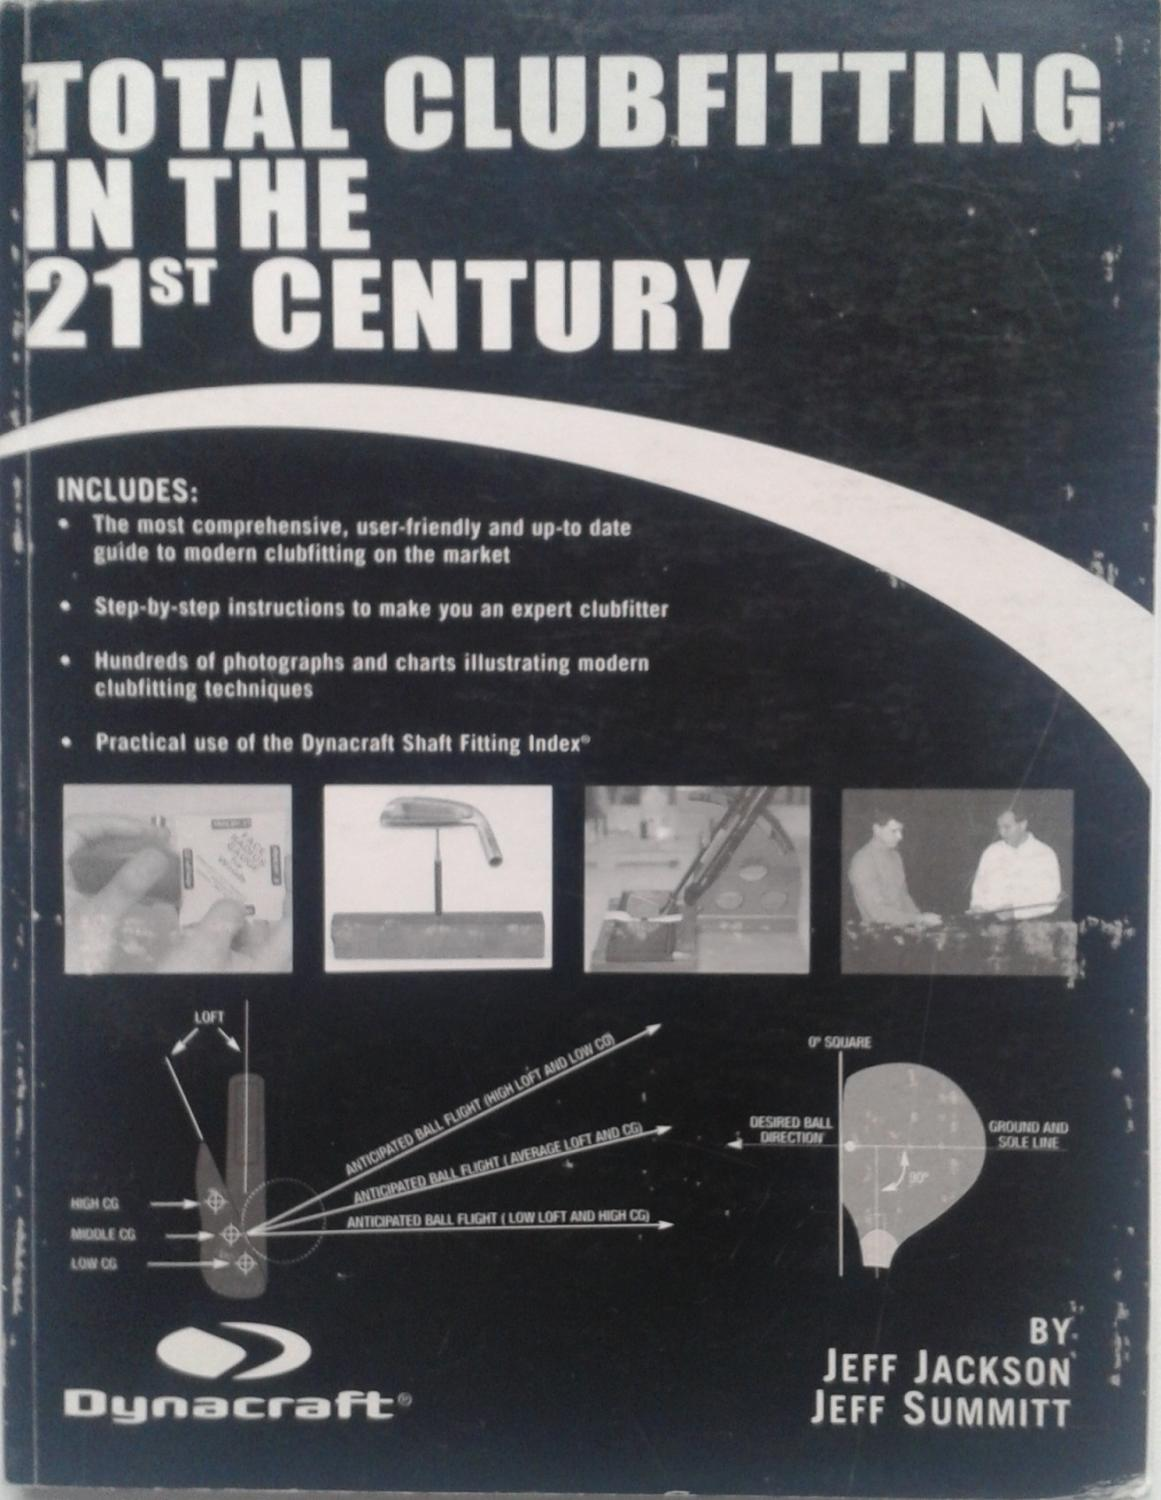 Total Clubfitting In The 21st Century Jeff Jackson, Jeff Summit Fine Softcover